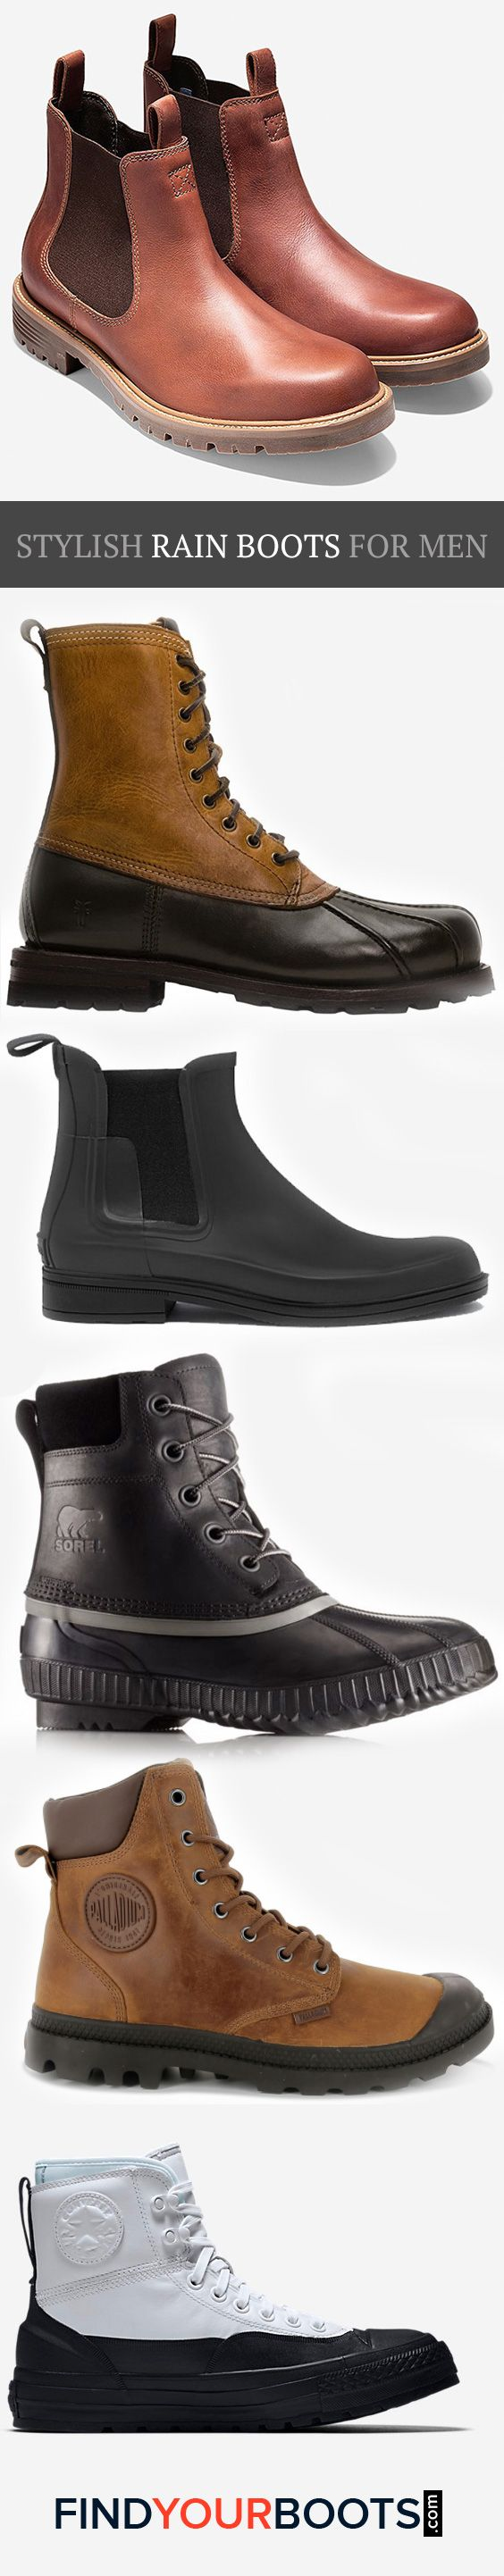 Ditch the rubber boots and upgrade to these cool rain boots for men that are as stylish as they are functional.